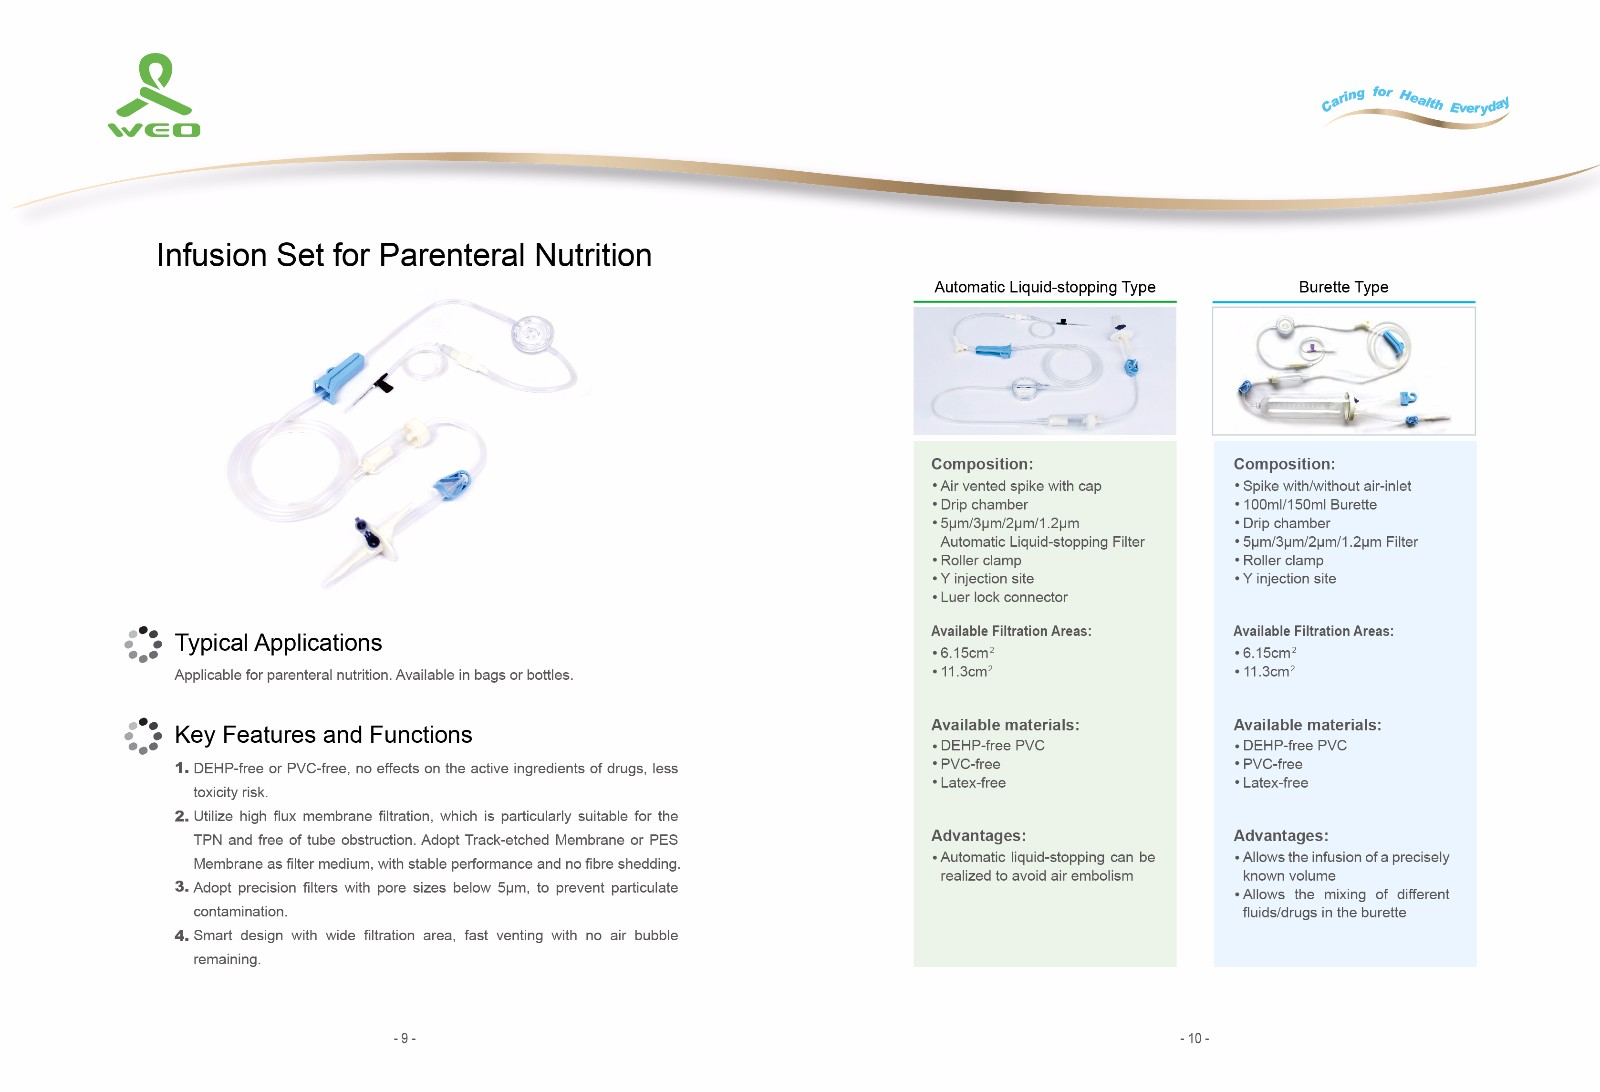 Infusion Set for Parenteral Nutrition.jpg